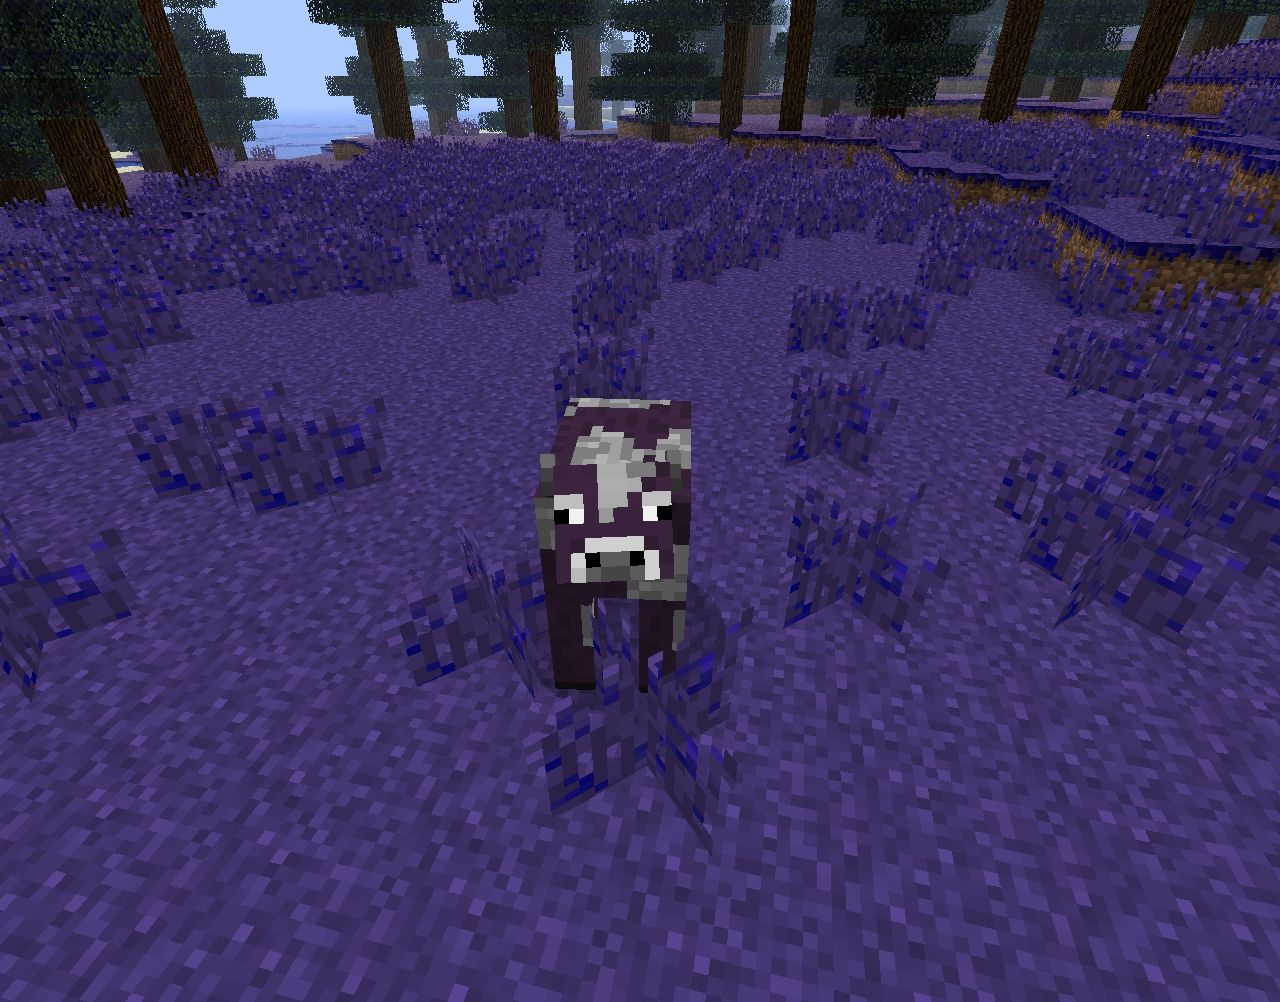 Purple cows!